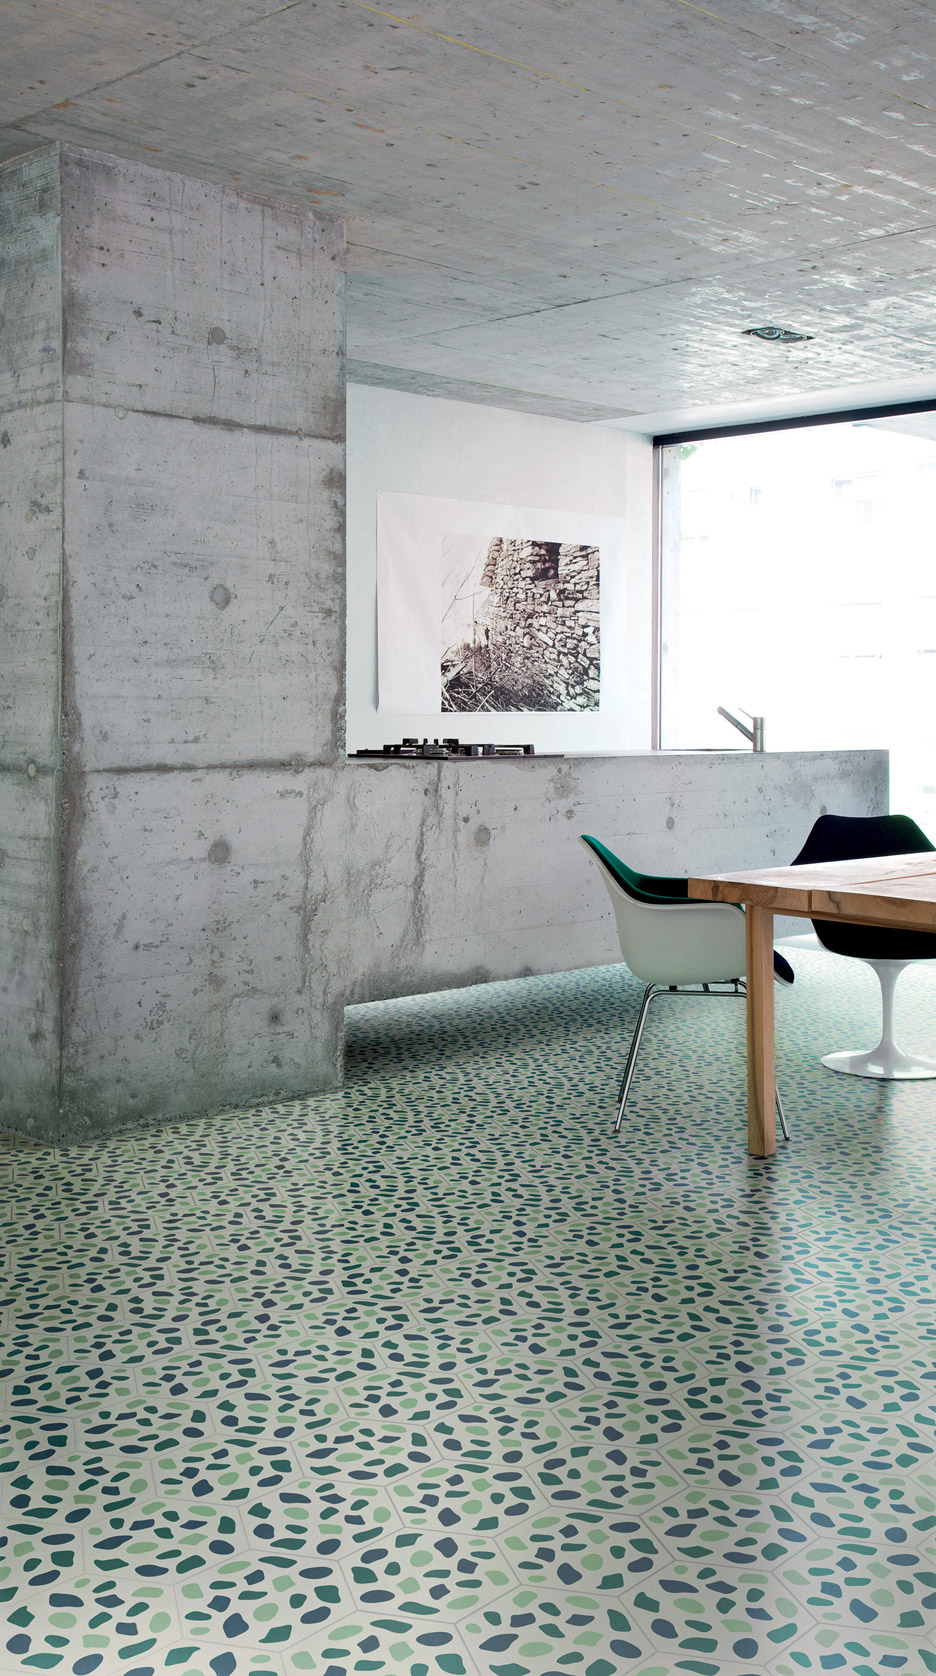 Tom Dixon's Cementiles tile collection for Bisazza